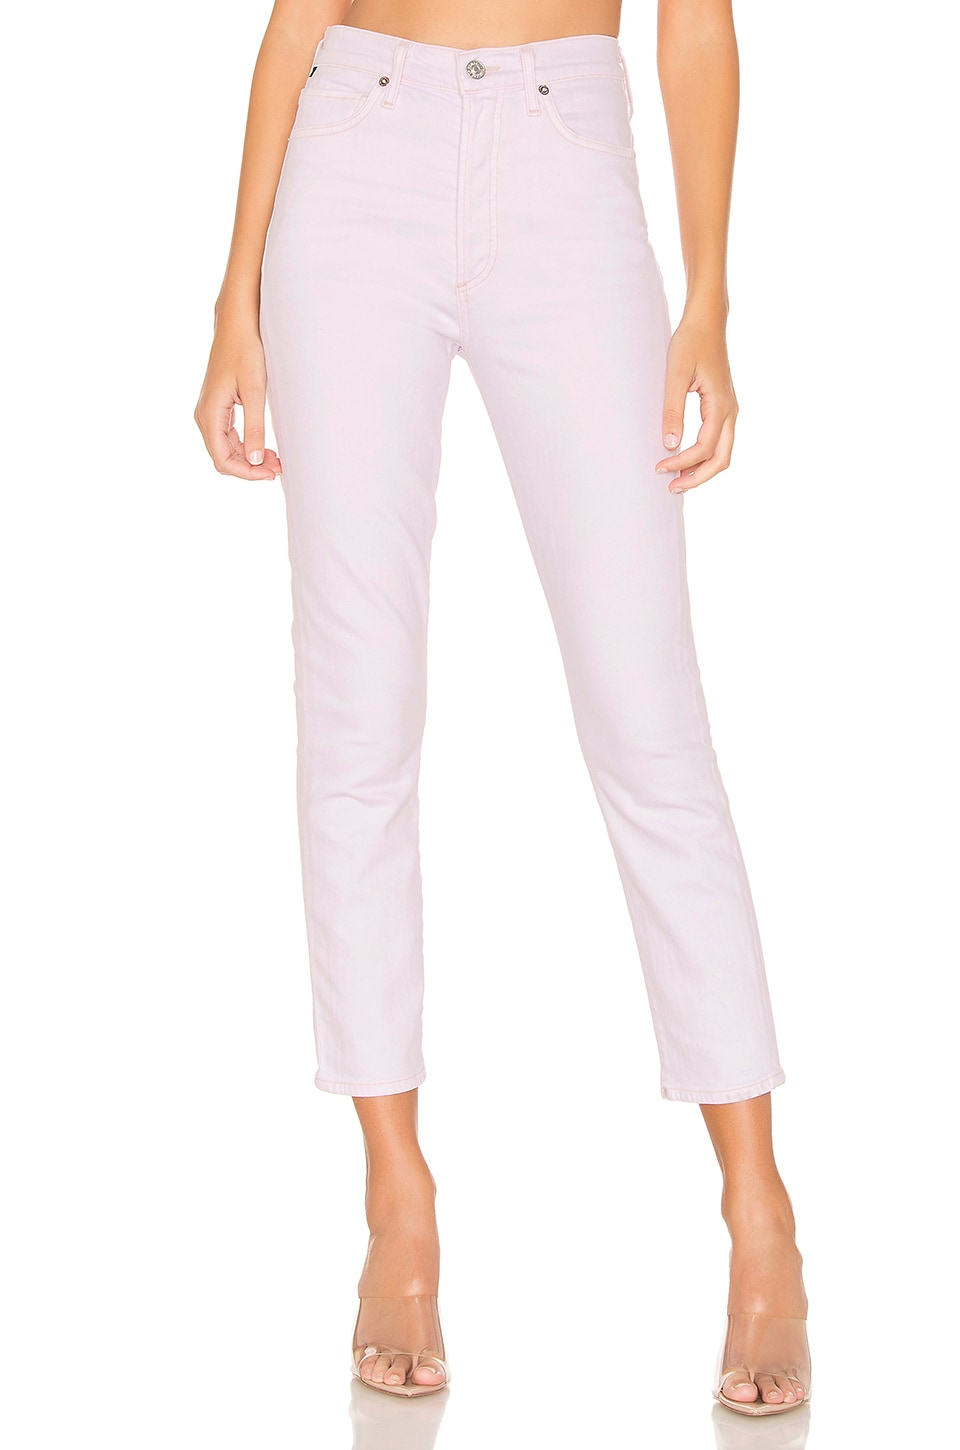 Citizens of Humanity Olivia Crop High Rise Slim Ankle in Wisteria